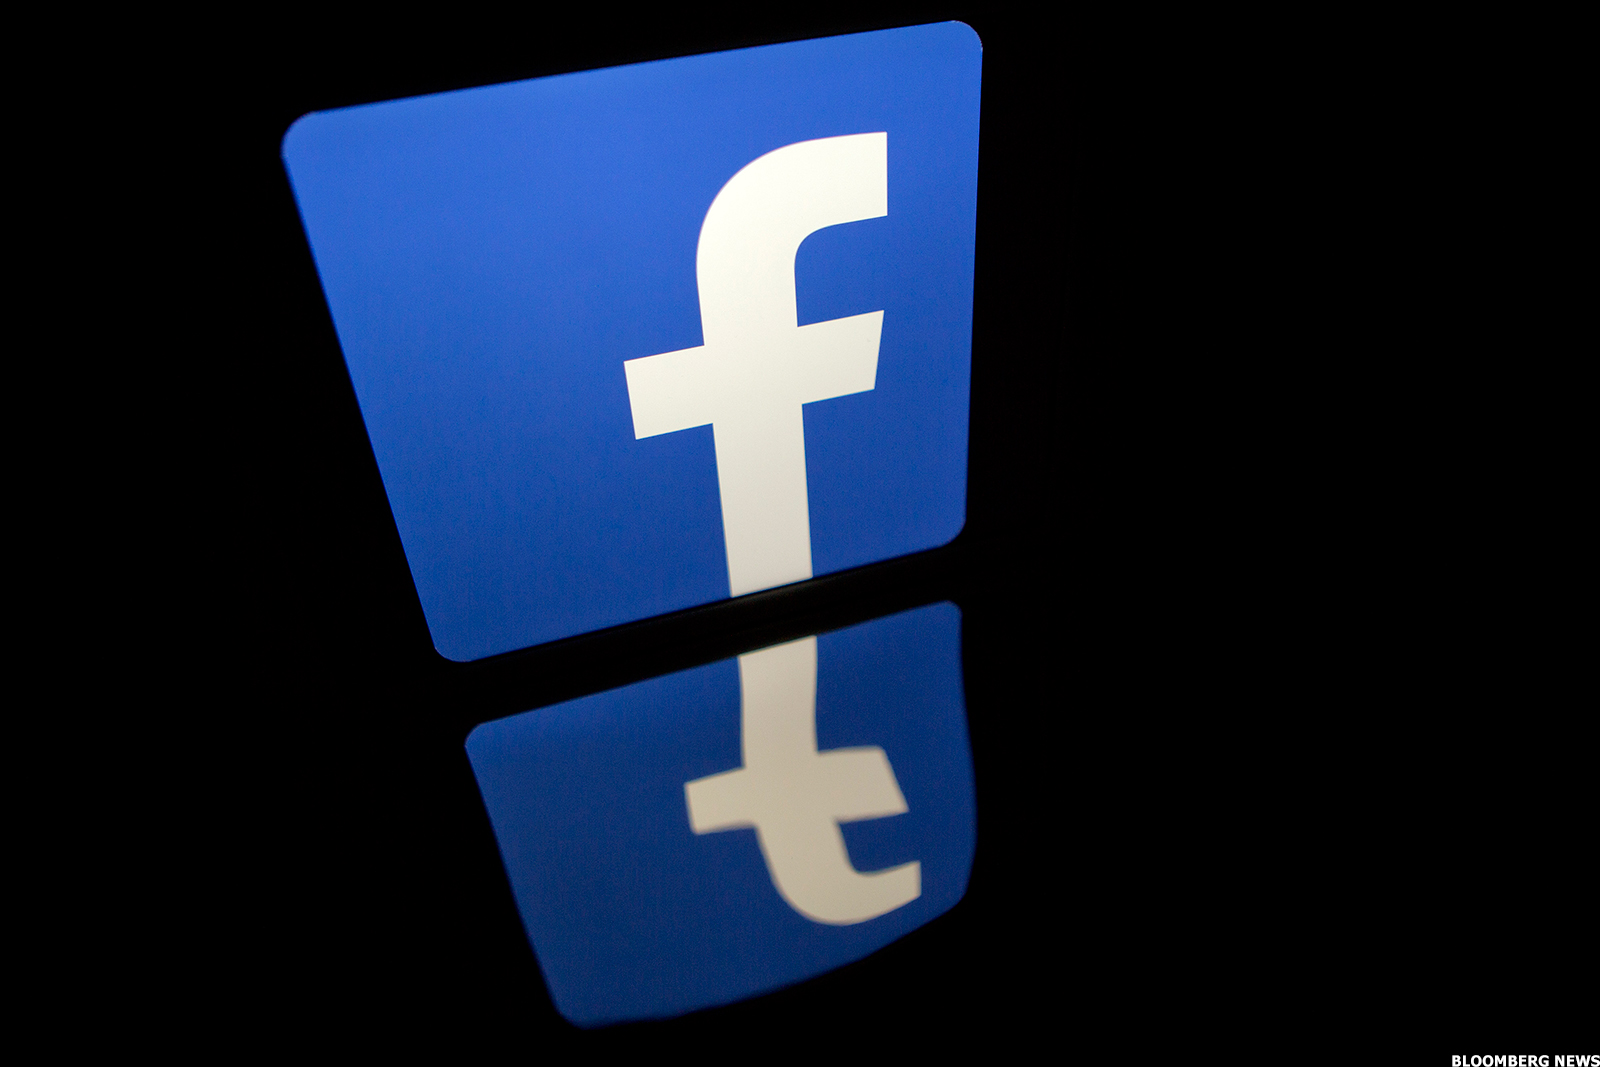 Why Facebook (FB) Stock Closed Down Today - TheStreet